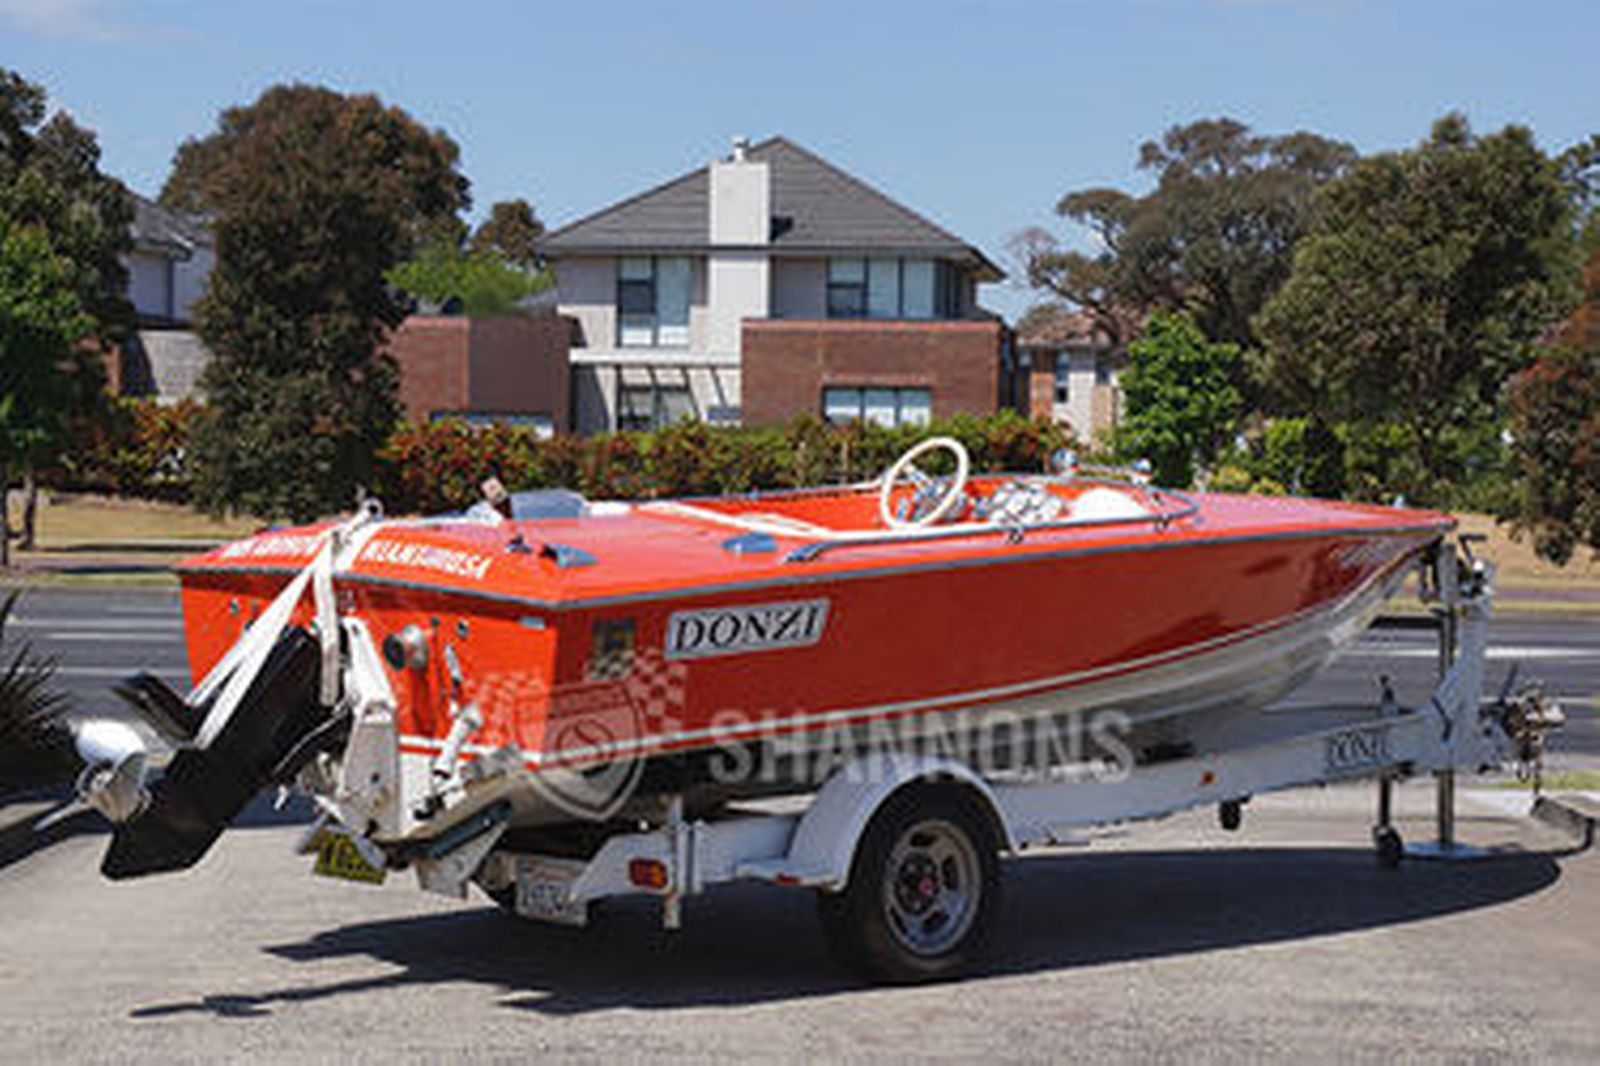 Donzi 'Sweet 16' Fibreglass Speed Boat on single axle trailer